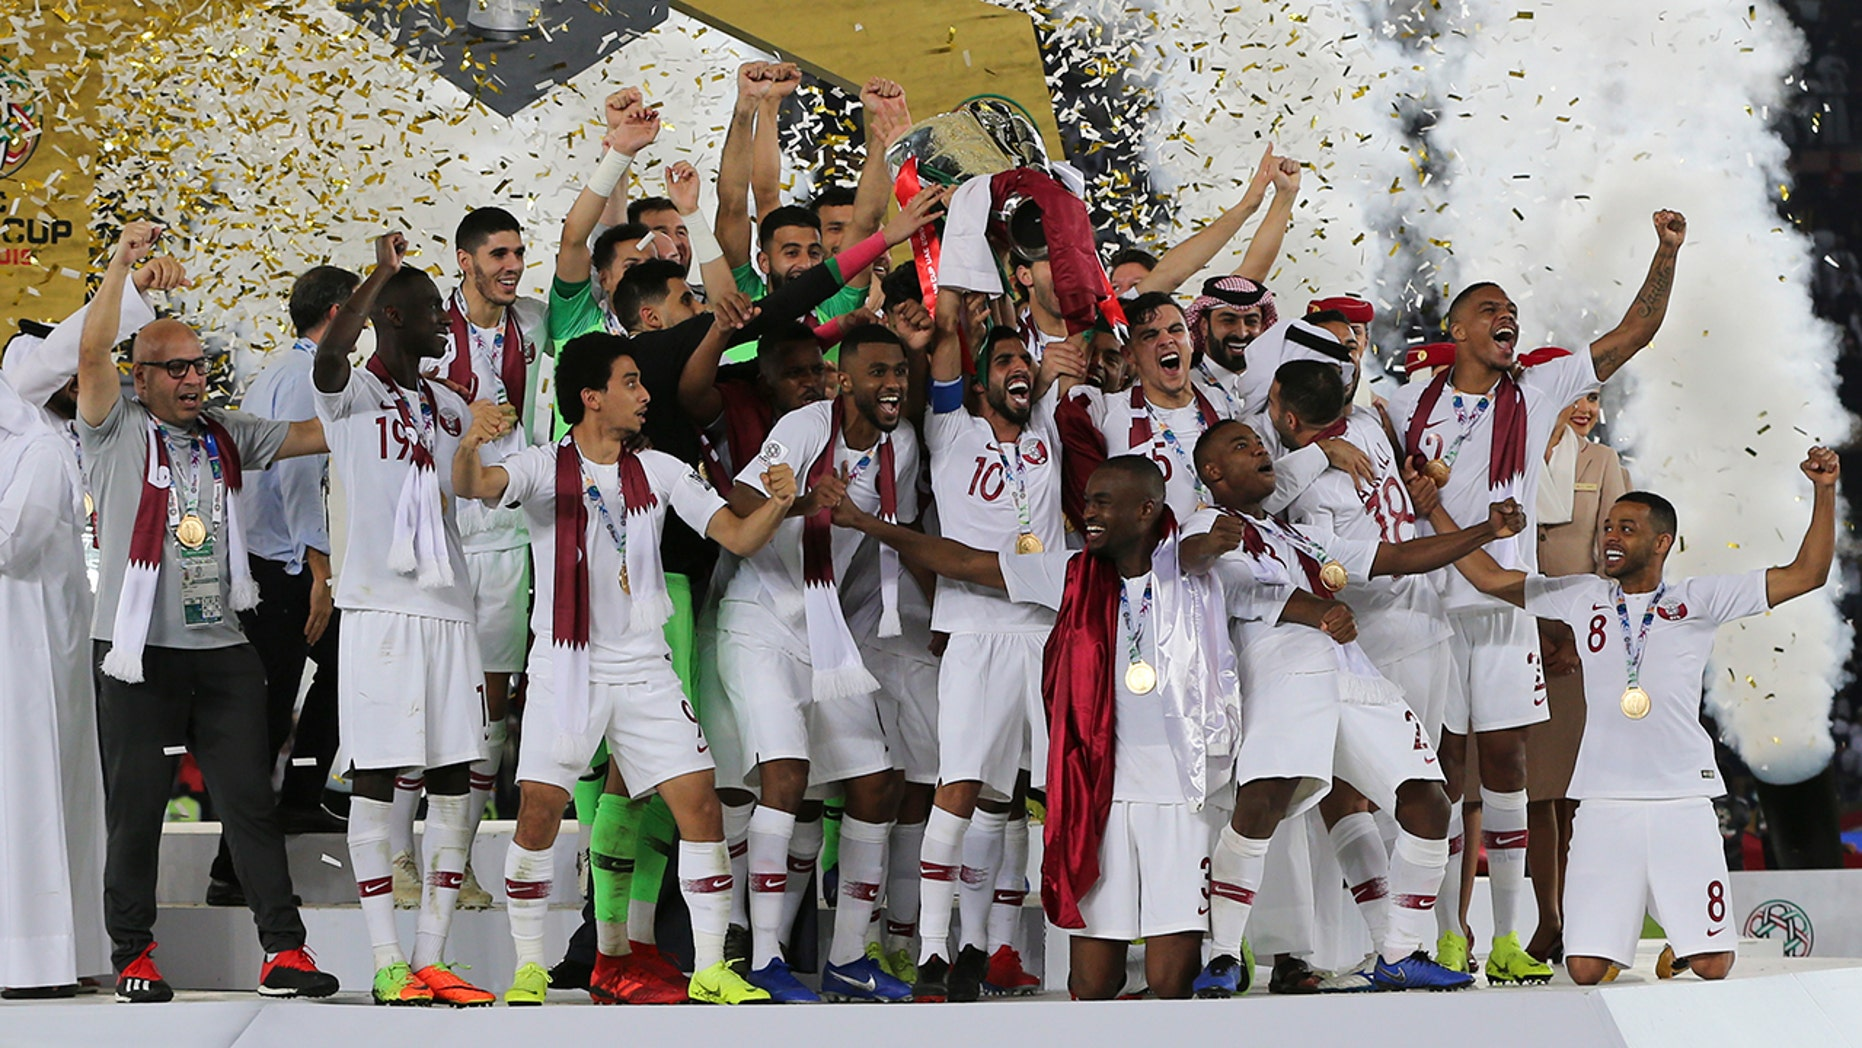 Qatars players lift the trophy after winning the AFC Asian Cup final match between Japan and Qatar in Zayed Sport City in Abu Dhabi, United Arab Emirates, Friday, Feb. 1, 2019.